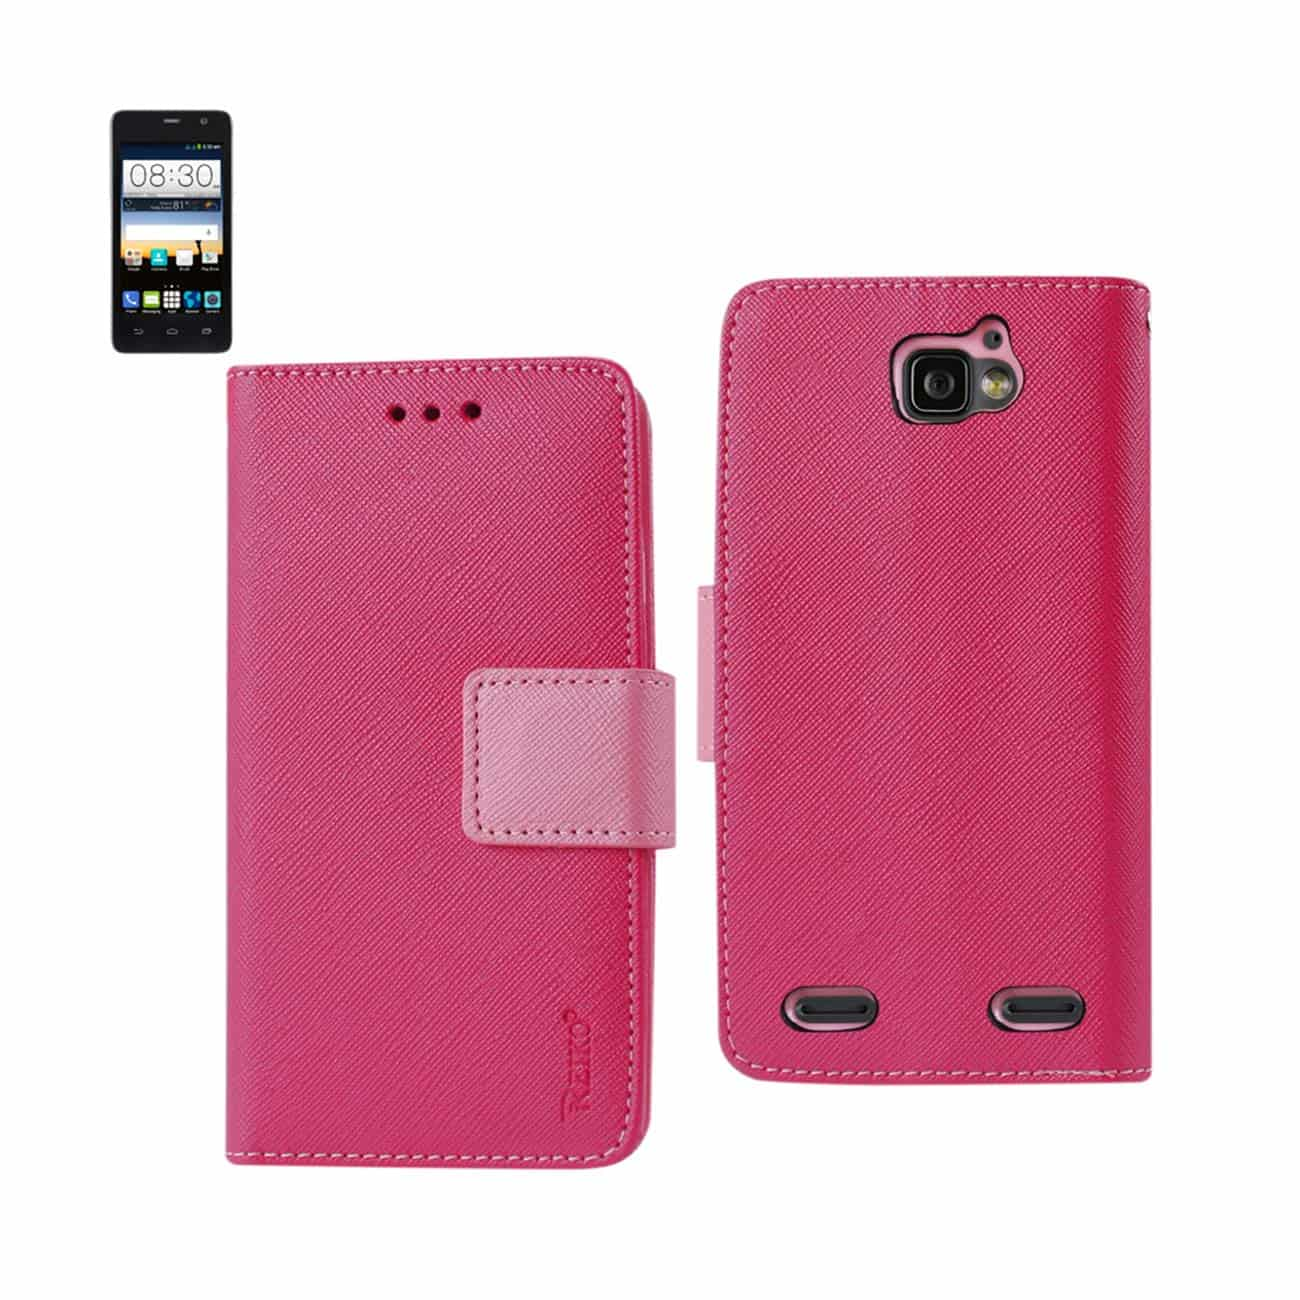 ZTE SONATA 2 3-IN-1 WALLET CASE IN HOT PINK